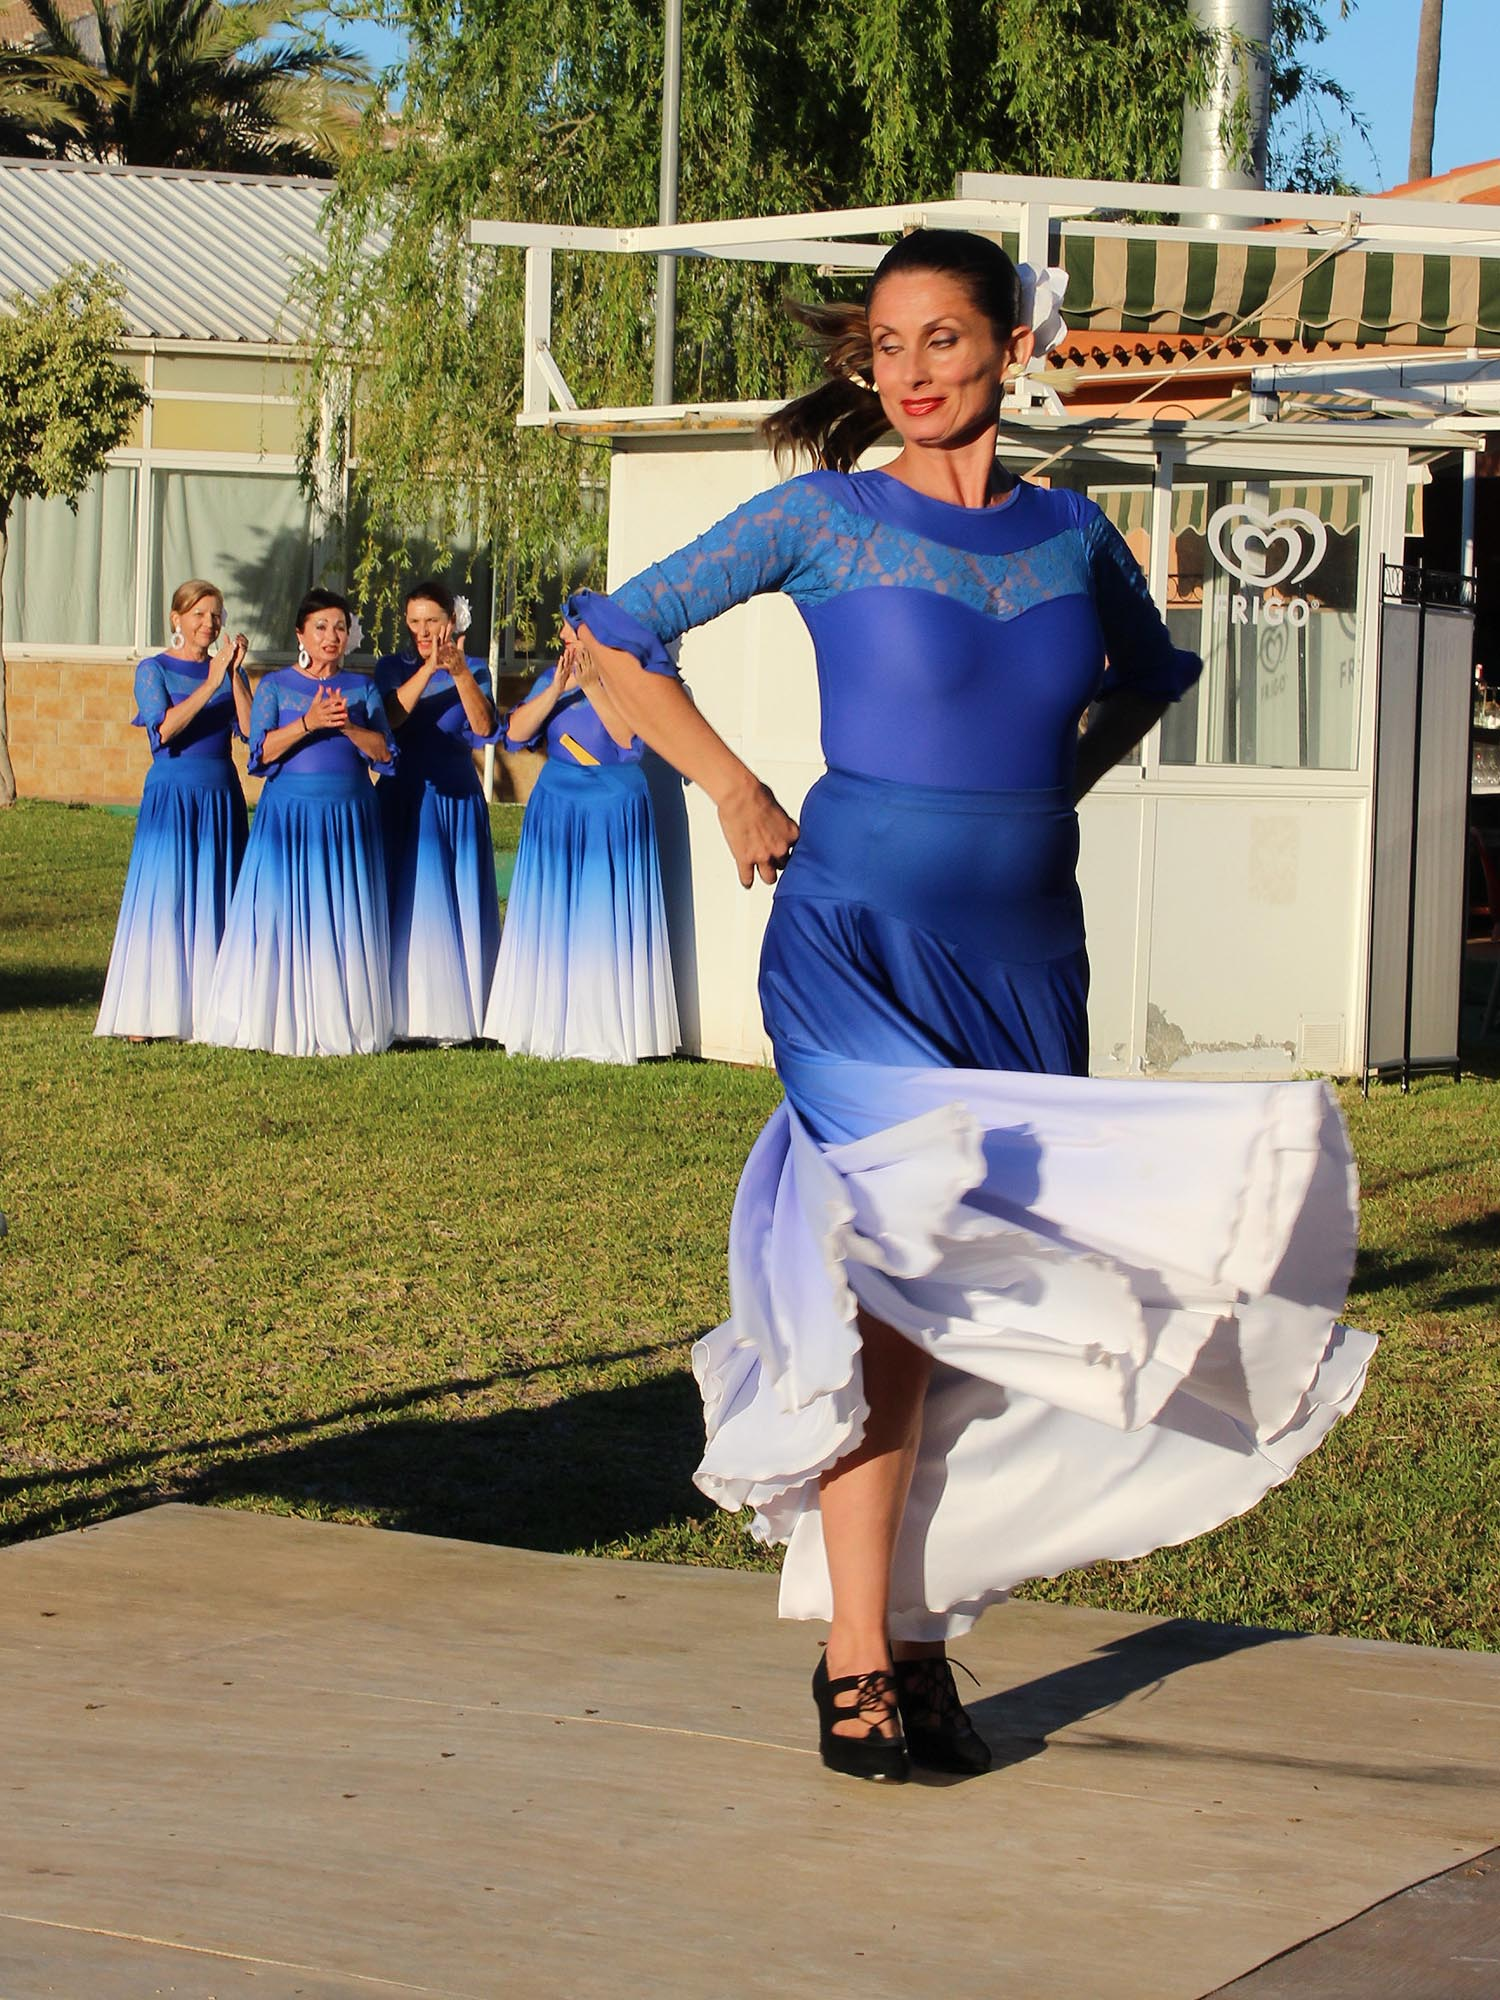 Francisca Samper and her flamenco dancers in the background